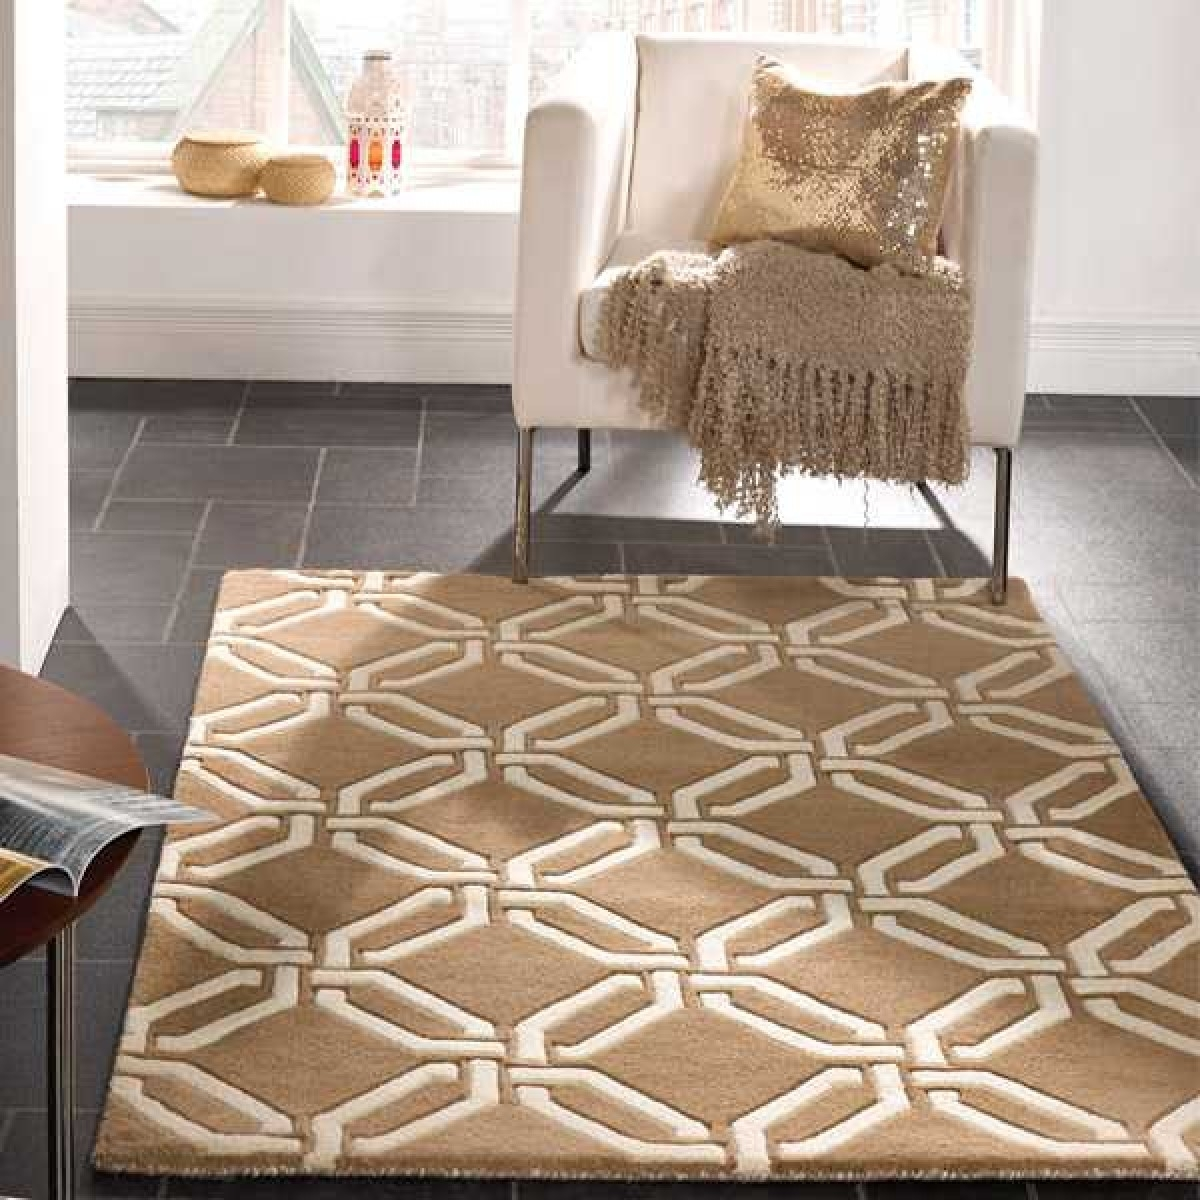 Moorish Meknes Beige Wool Rugs Flair Therugshopuk Inside Flair Rugs (Image 8 of 15)